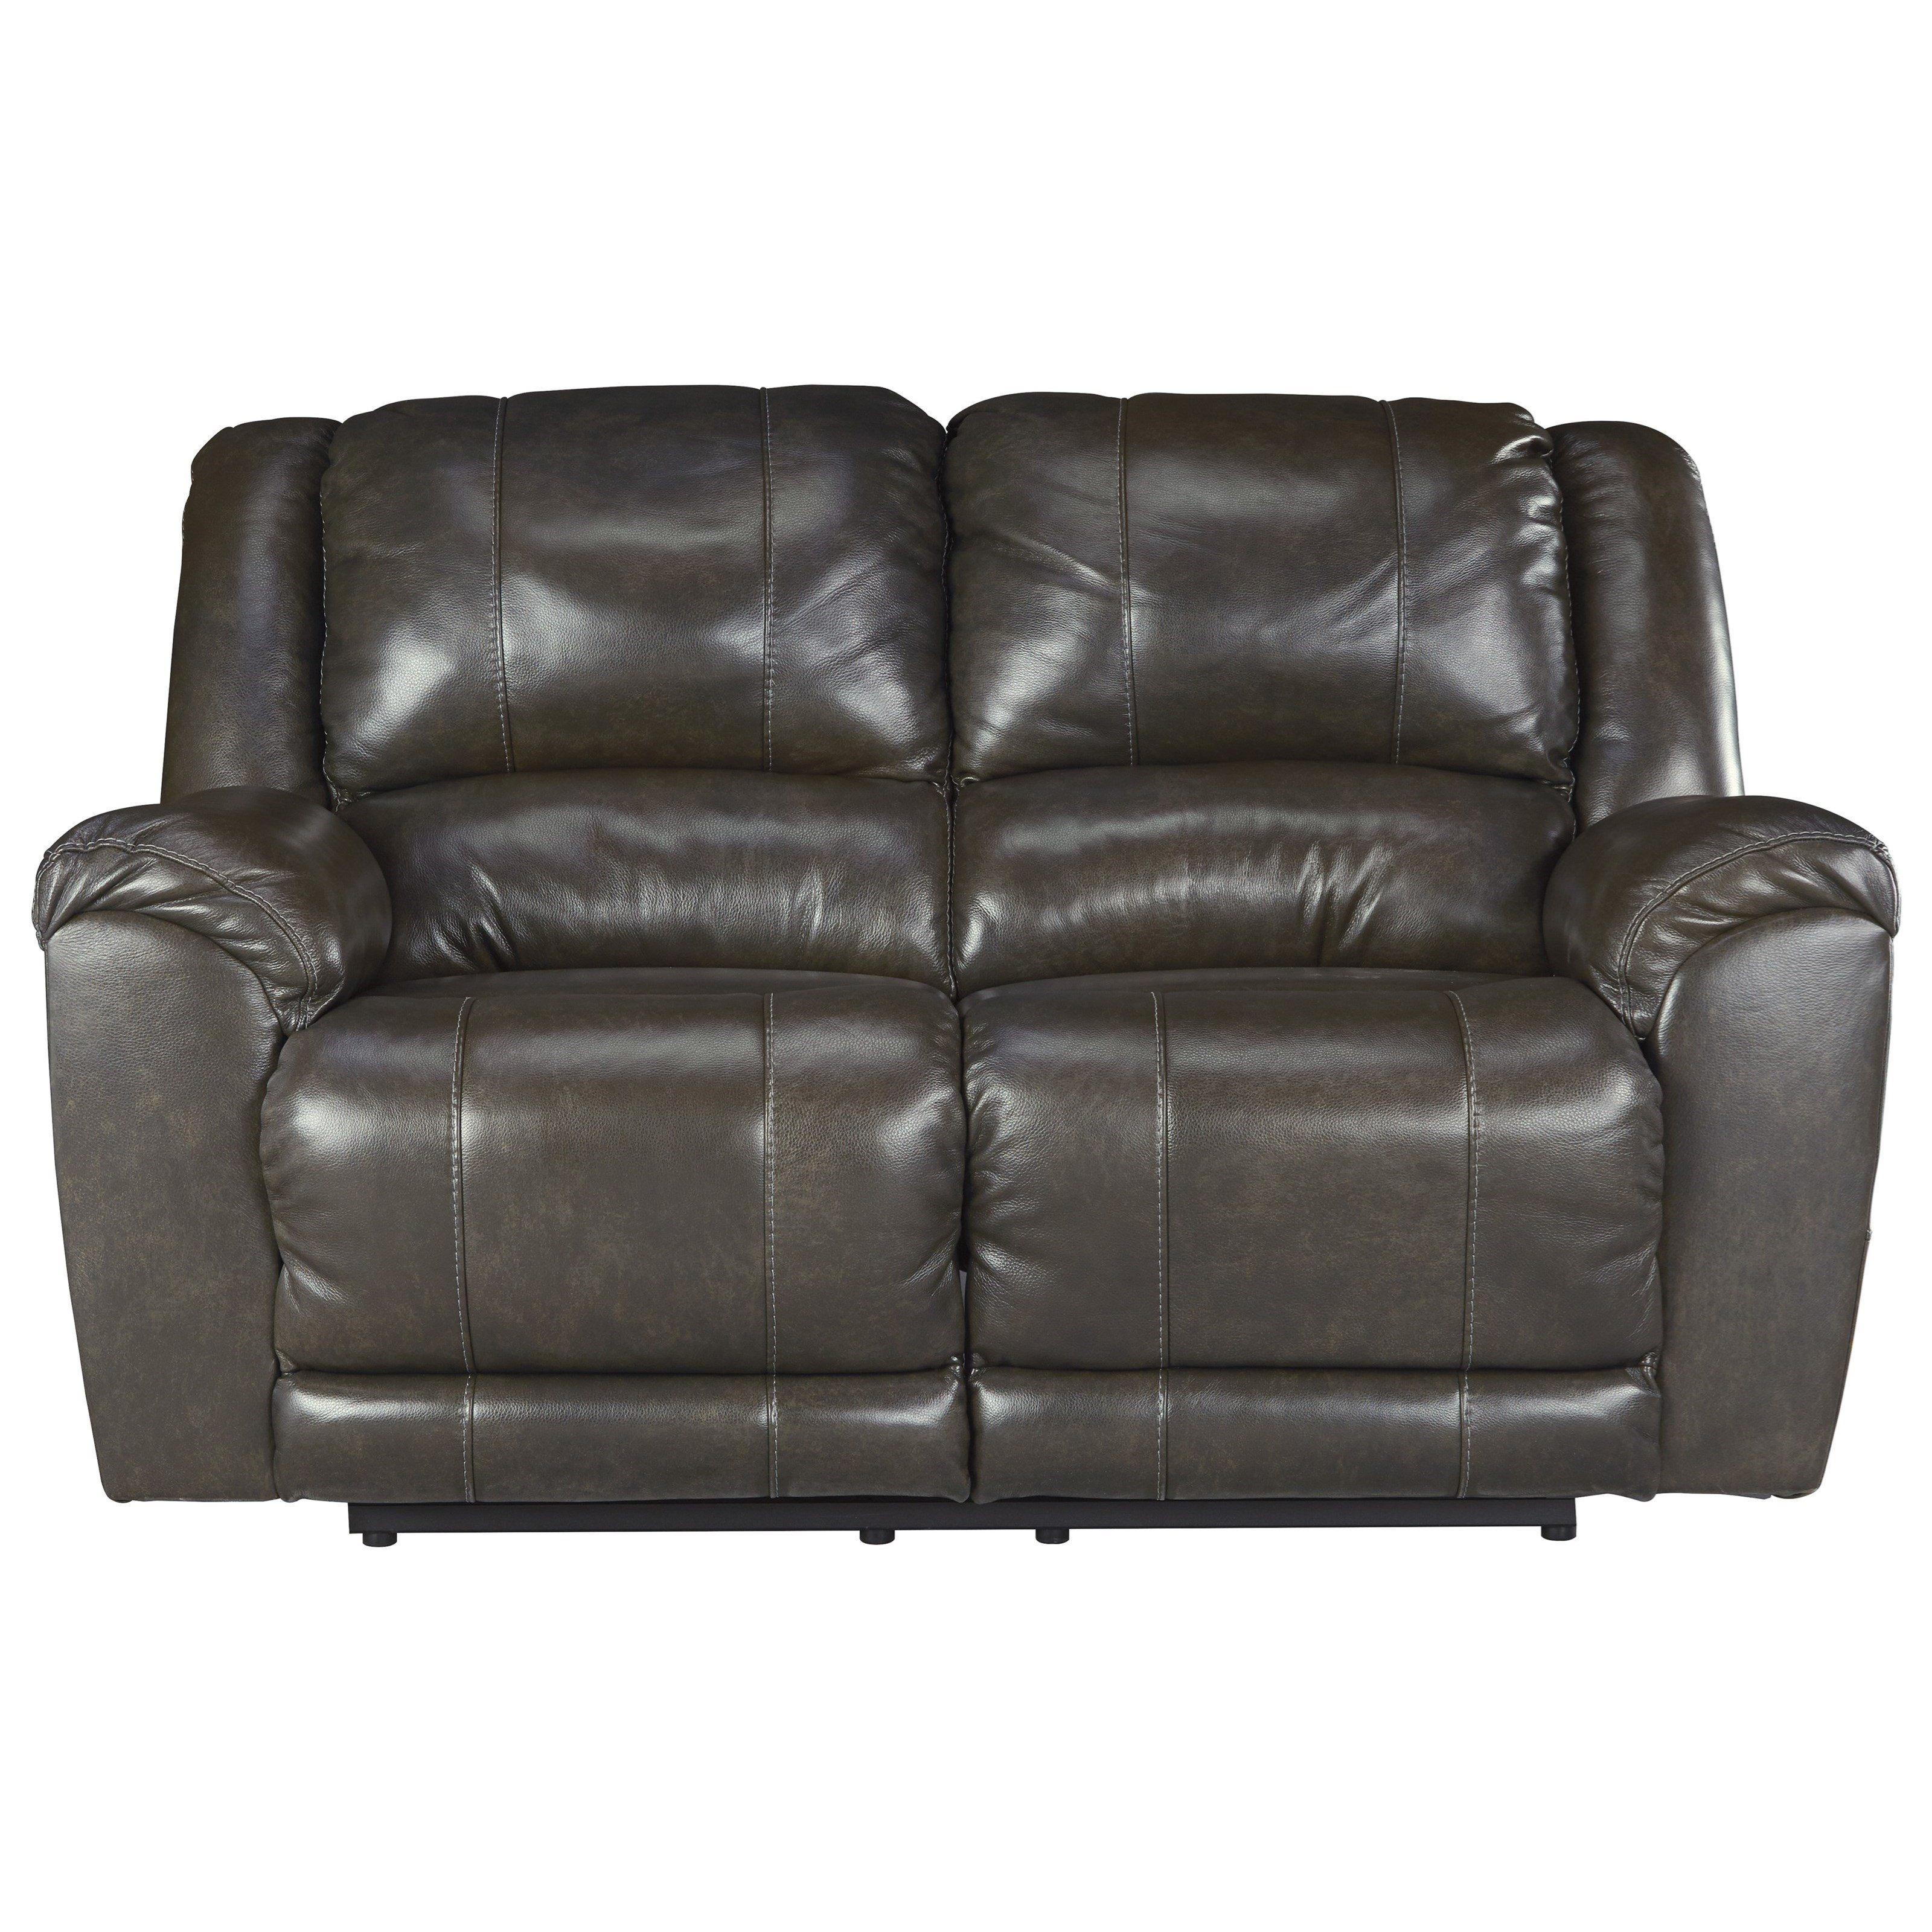 Signature Design By Ashley Yancy Leather Match Reclining Loveseat Furniture Superstore